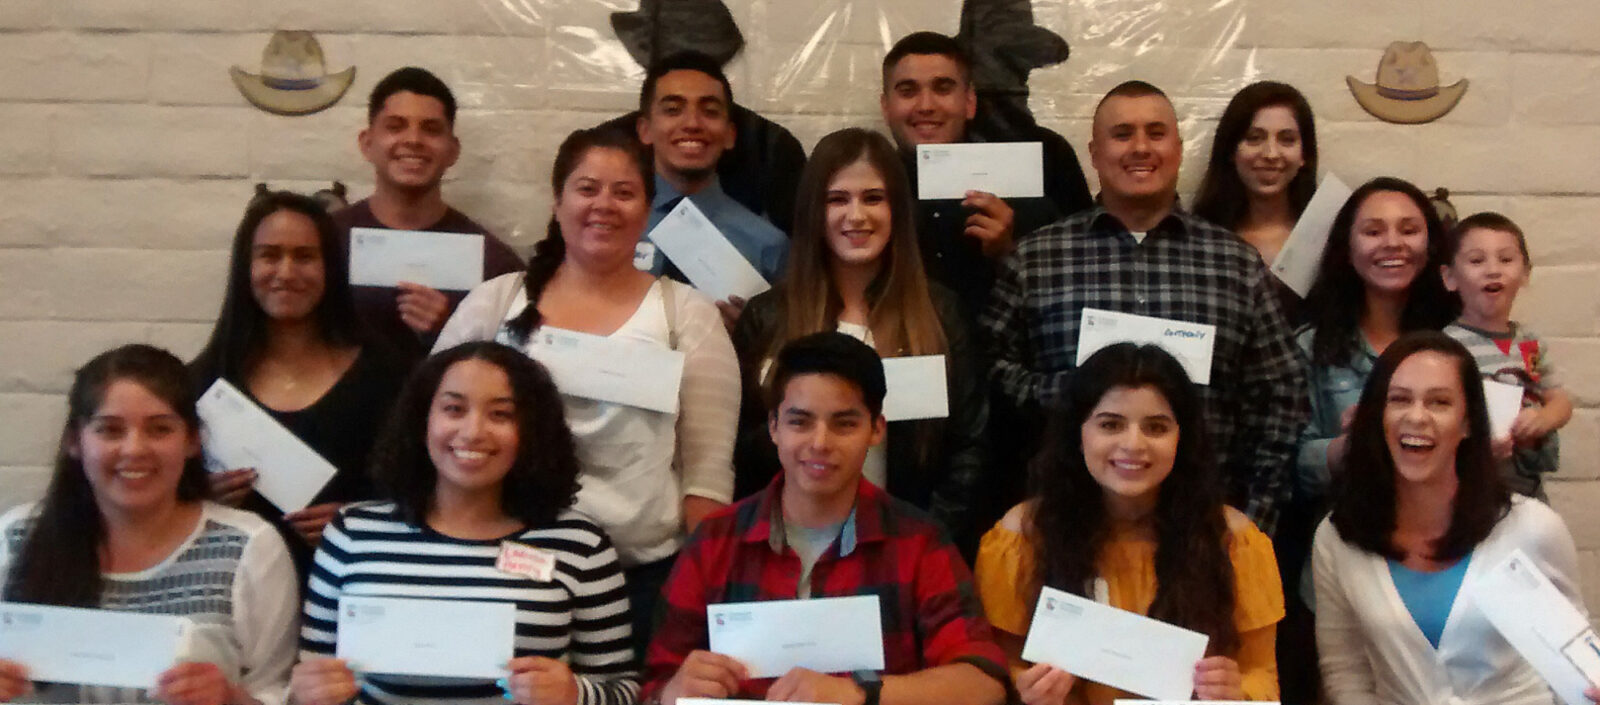 Scholarships for latino adults pic 180